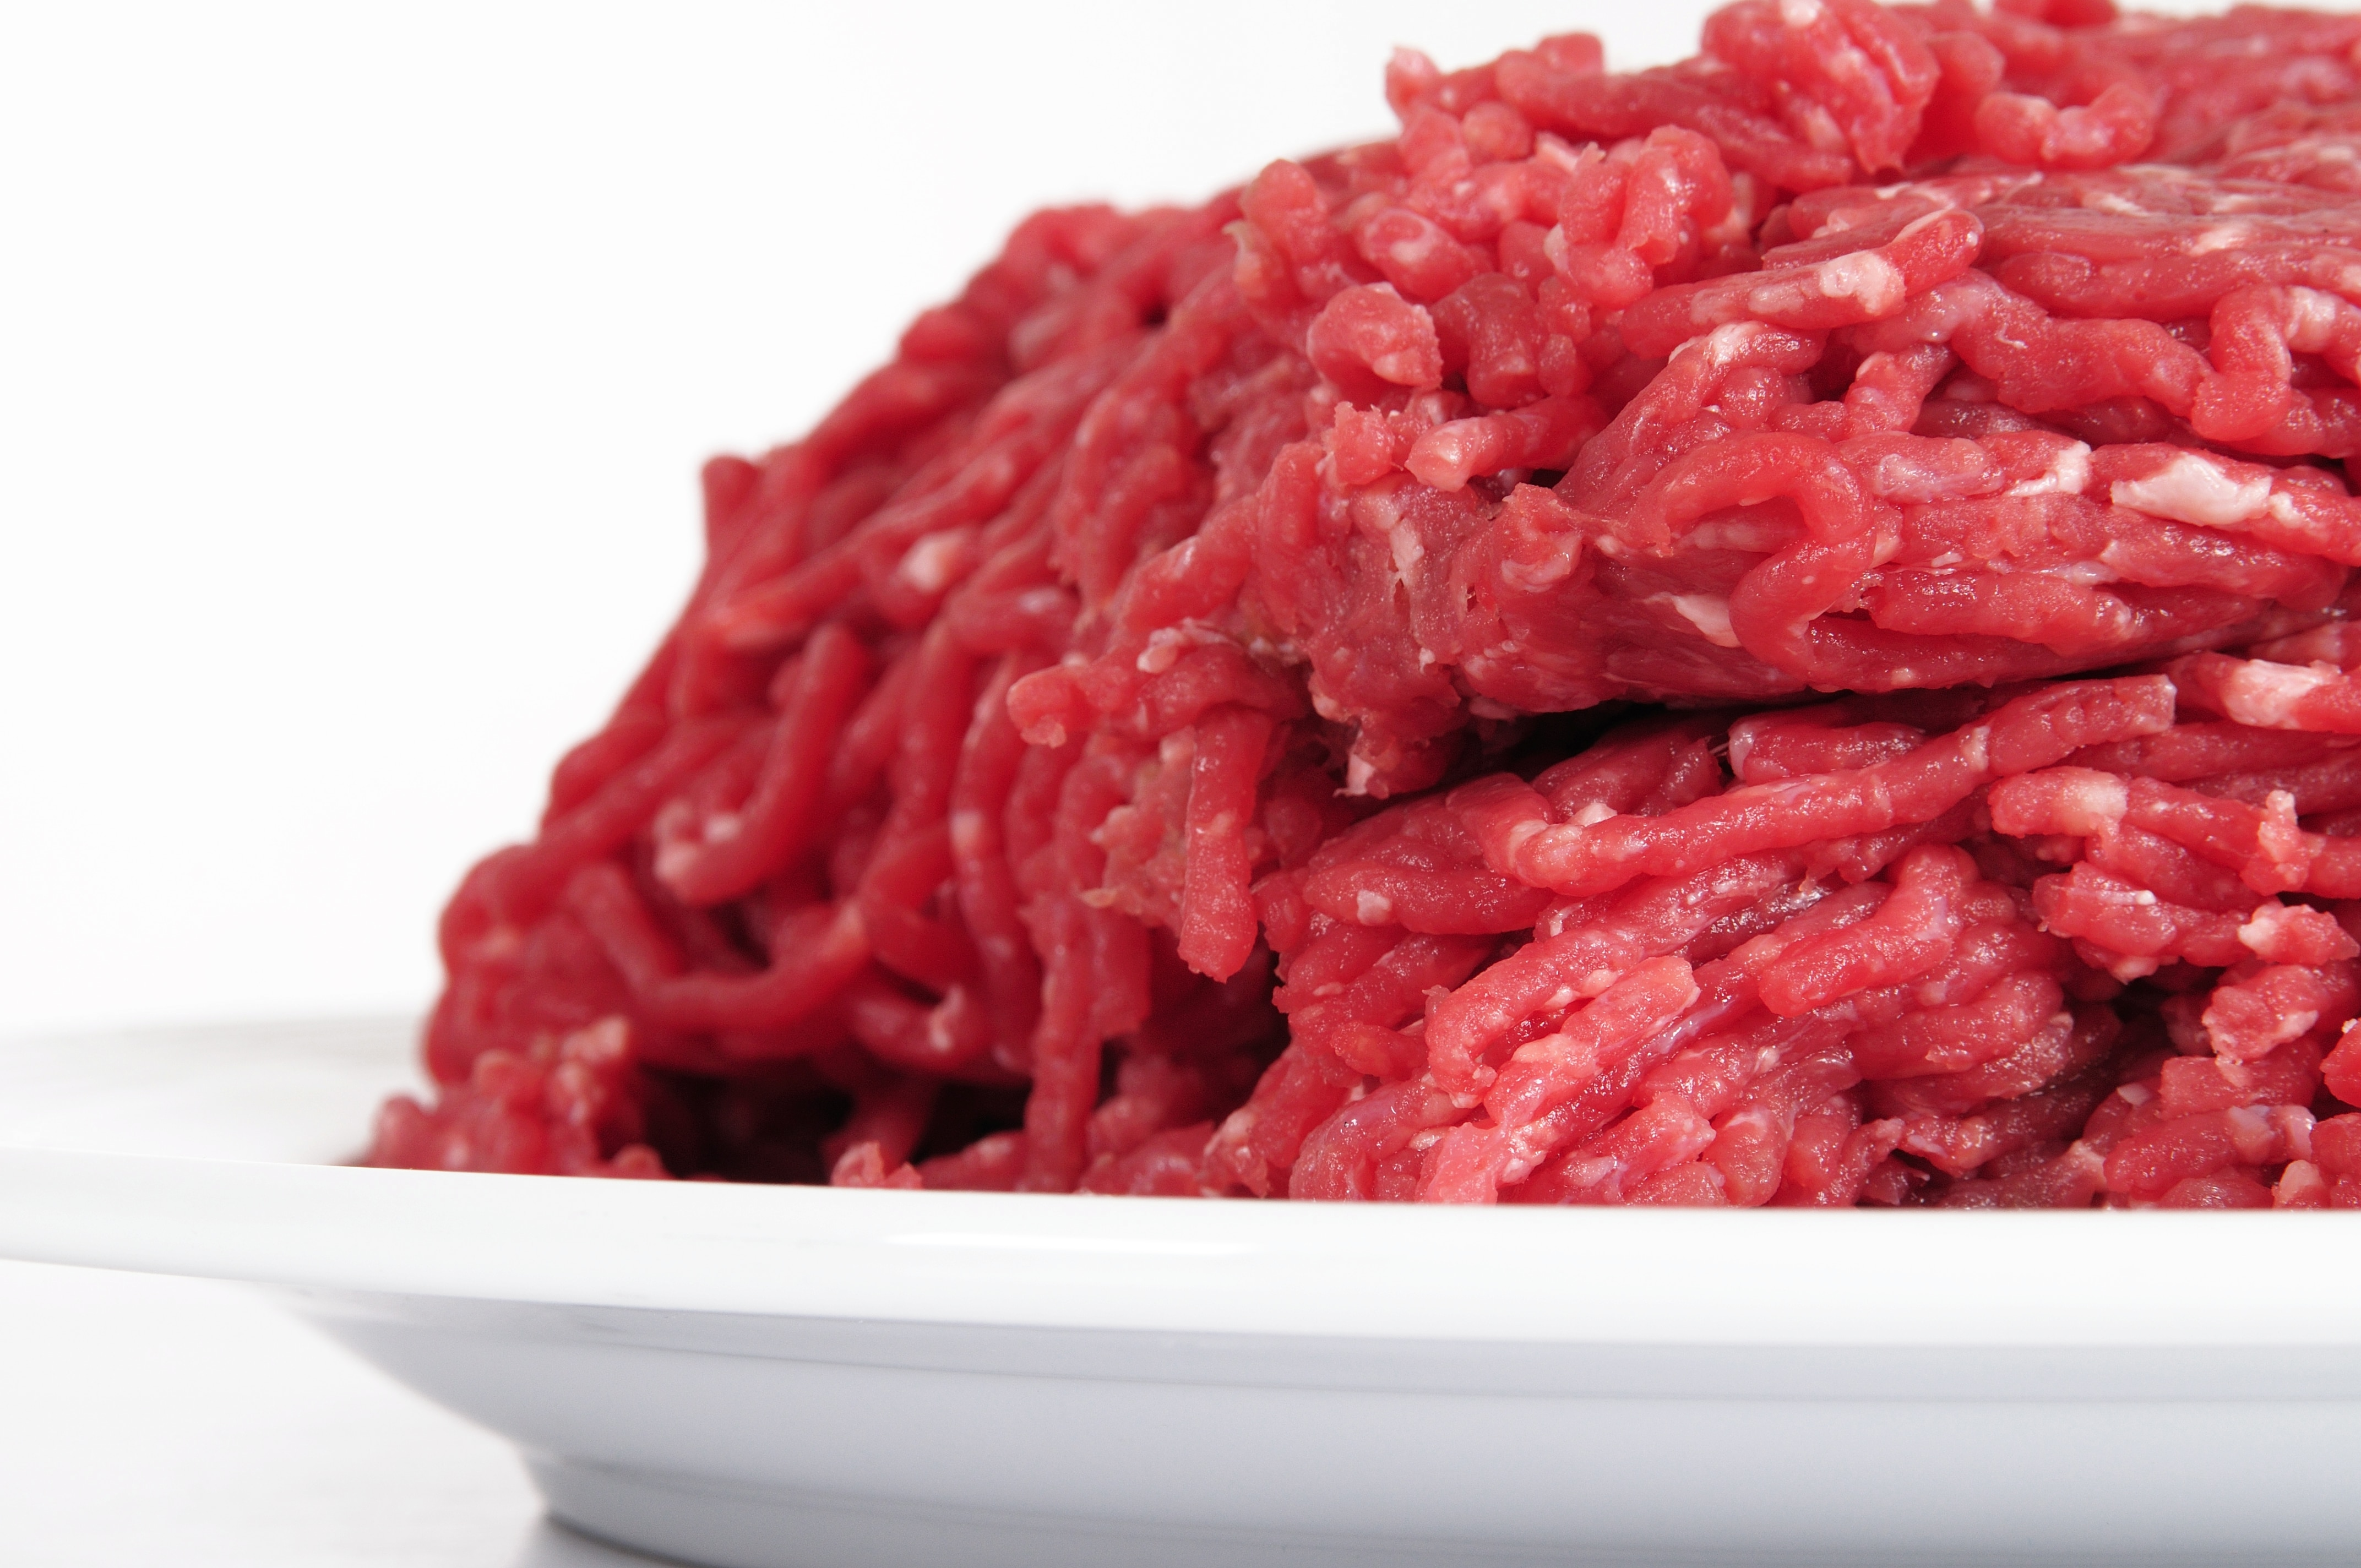 More Than 56 Tons Of Beef Recalled For E. Coli